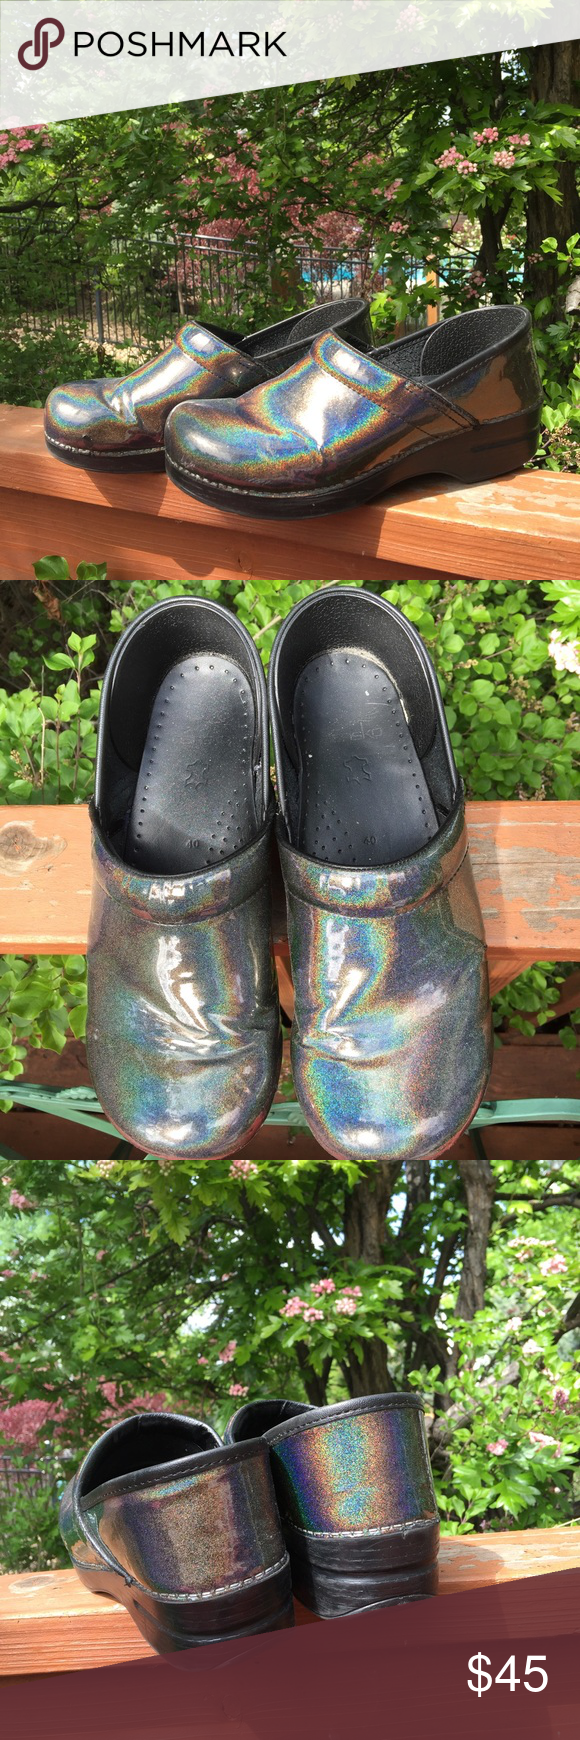 Dansko clogs. Size 40. Black grey rainbow prism Good condition. Very small tear on right clog (see first photo) and some creases on top of clogs. Dansko Shoes Mules & Clogs